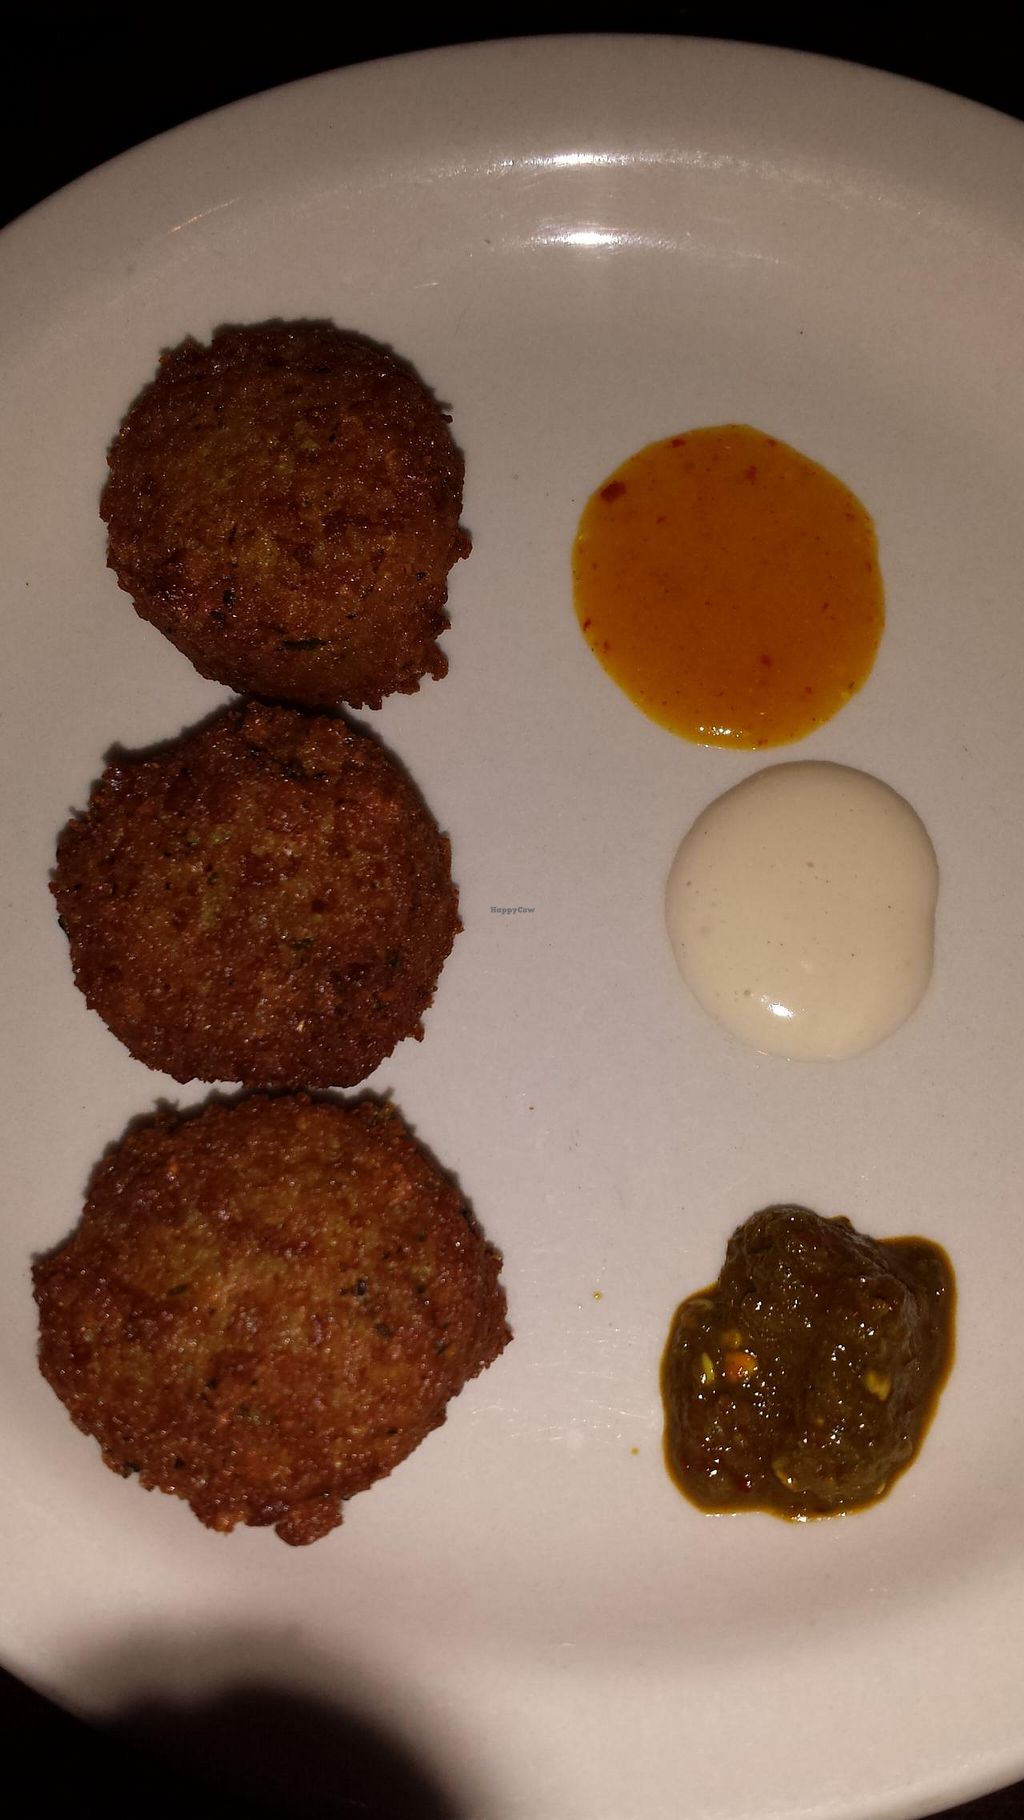 """Photo of Falafel Bistro and Wine Bar  by <a href=""""/members/profile/Michael%20X.%20James"""">Michael X. James</a> <br/>Falafel balls with sauces <br/> April 10, 2014  - <a href='/contact/abuse/image/16764/67340'>Report</a>"""